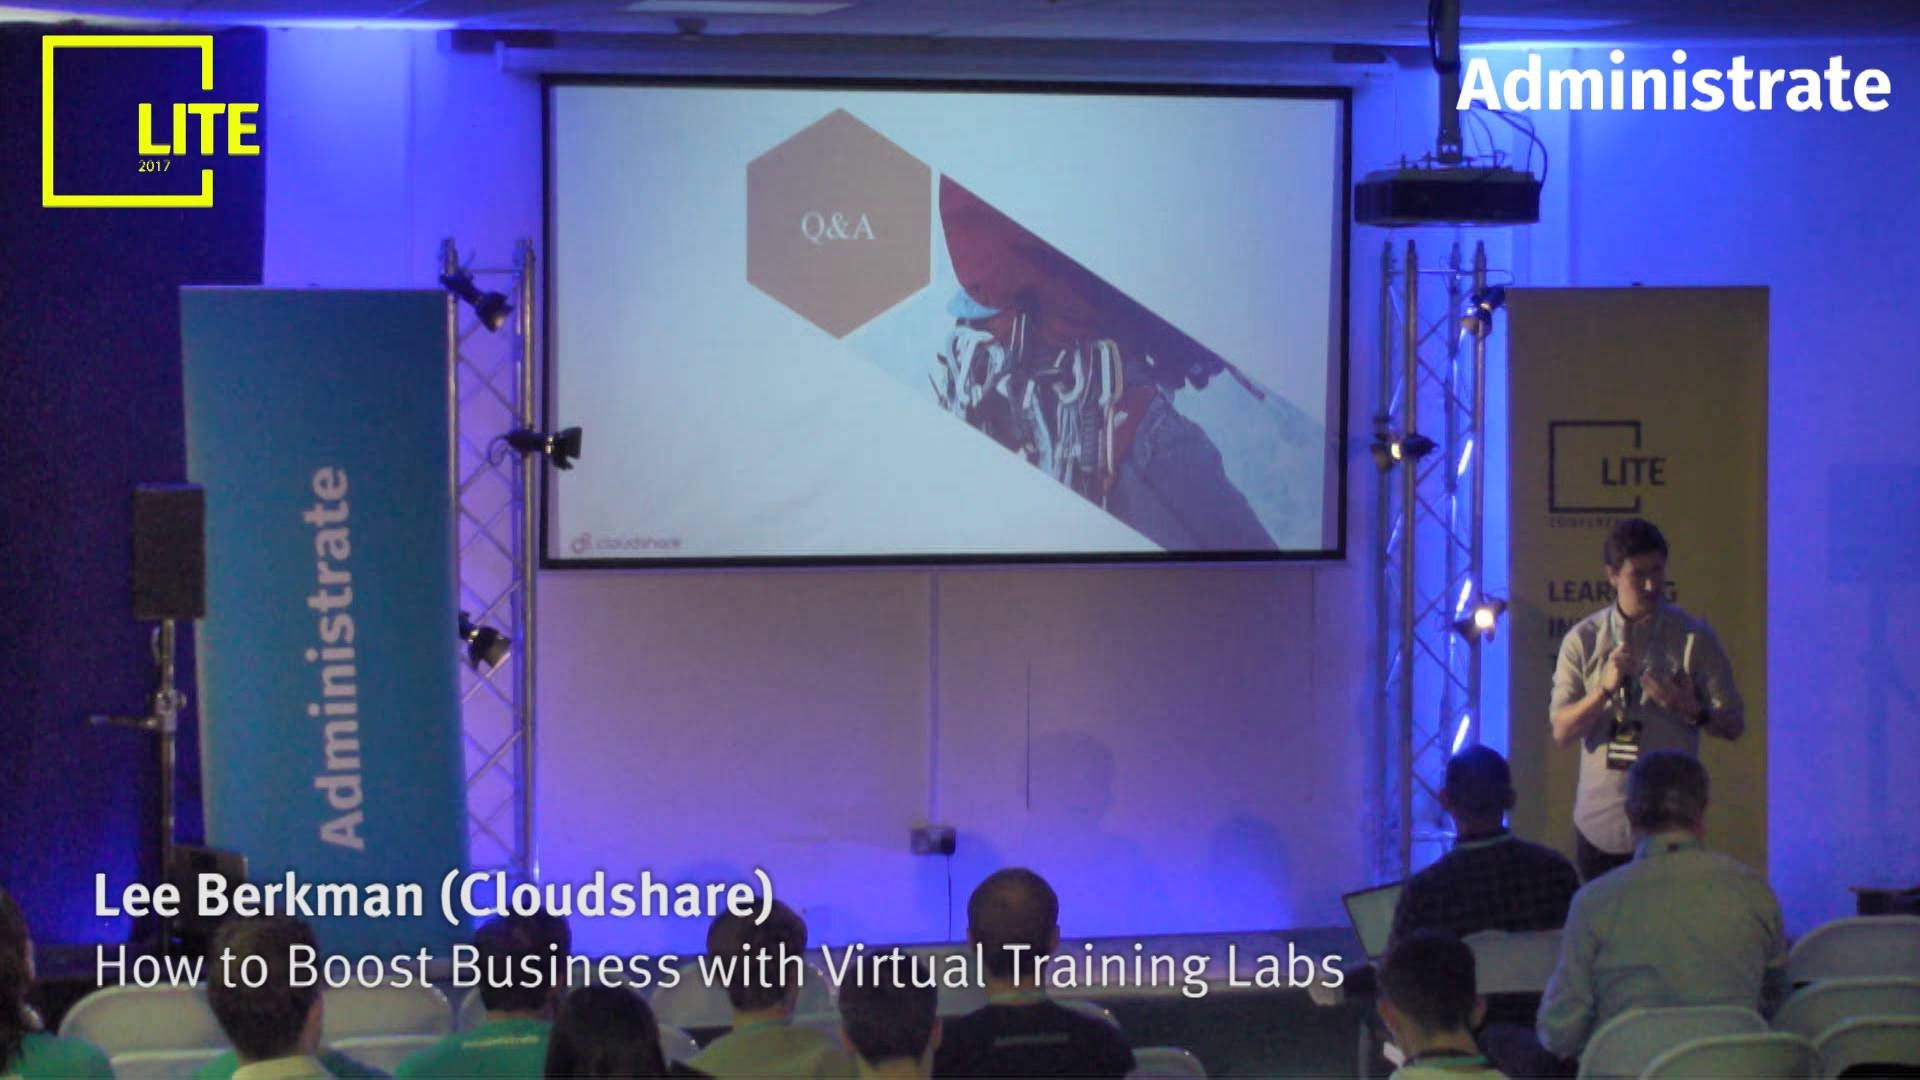 How to Boost Business with Virtual Training Labs [Lee Berkman]